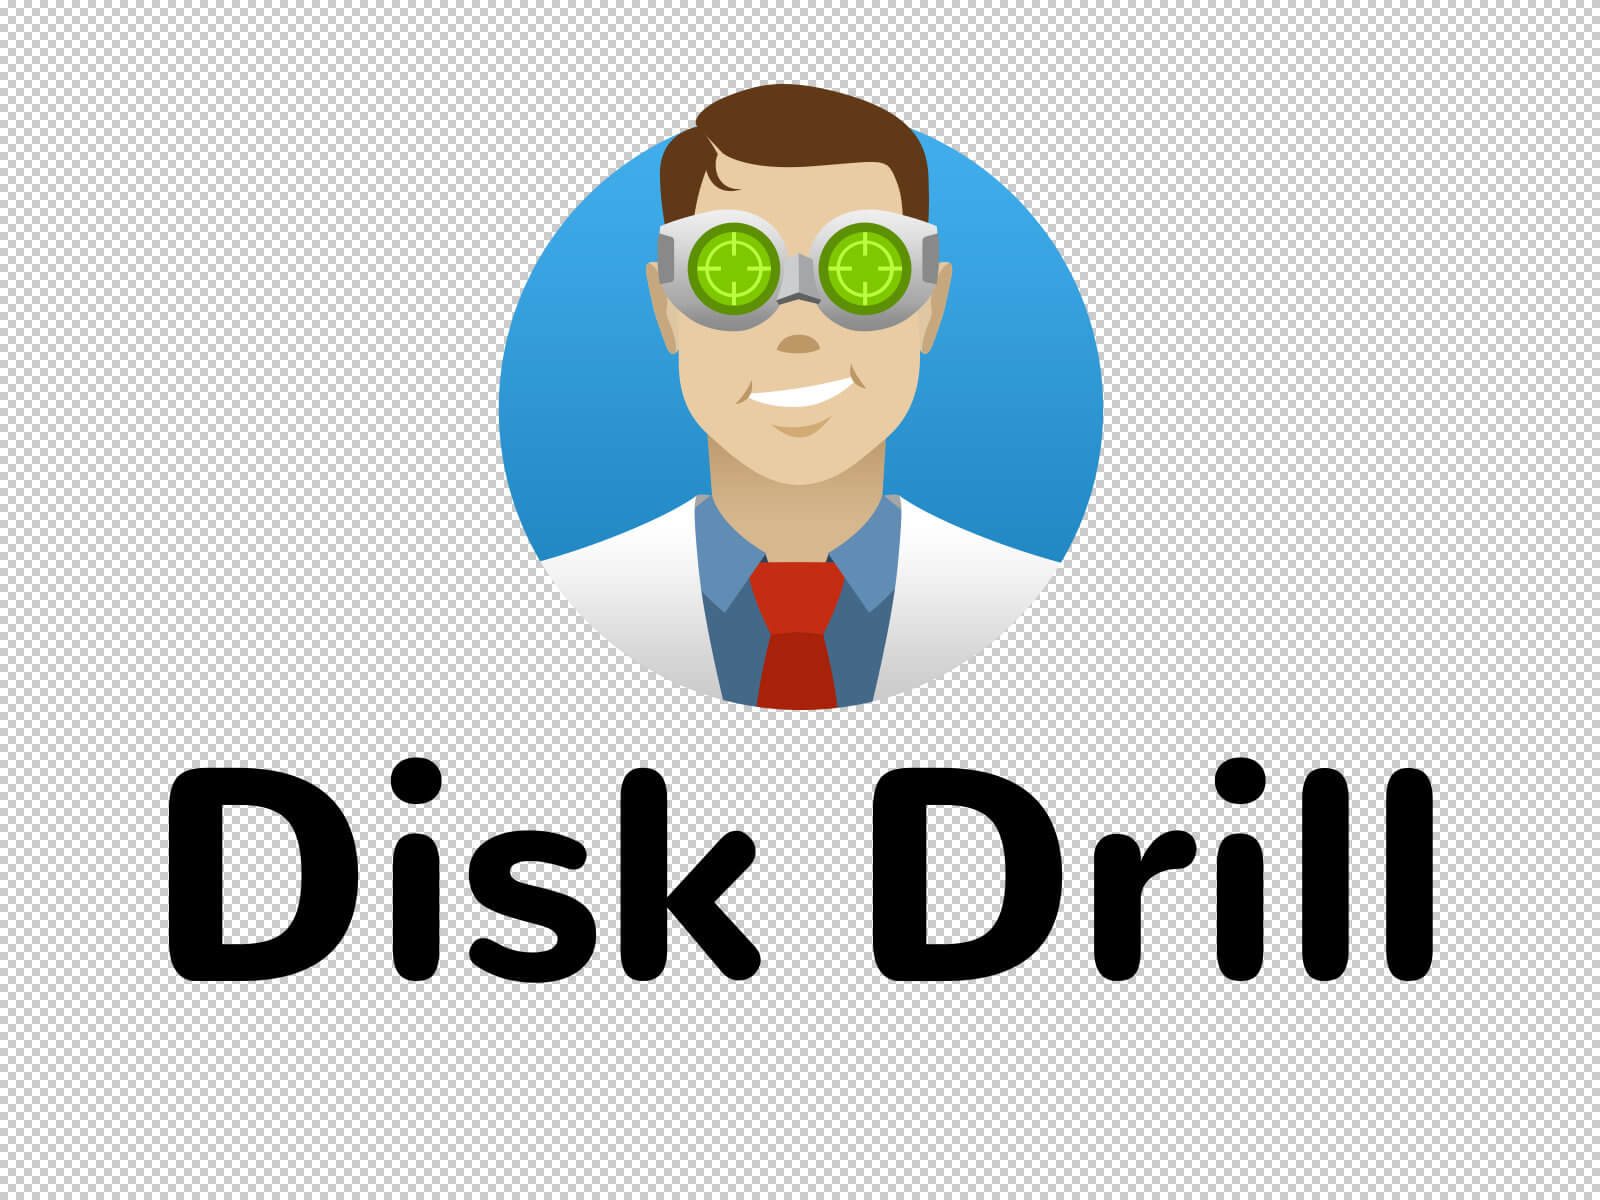 Disk Drill